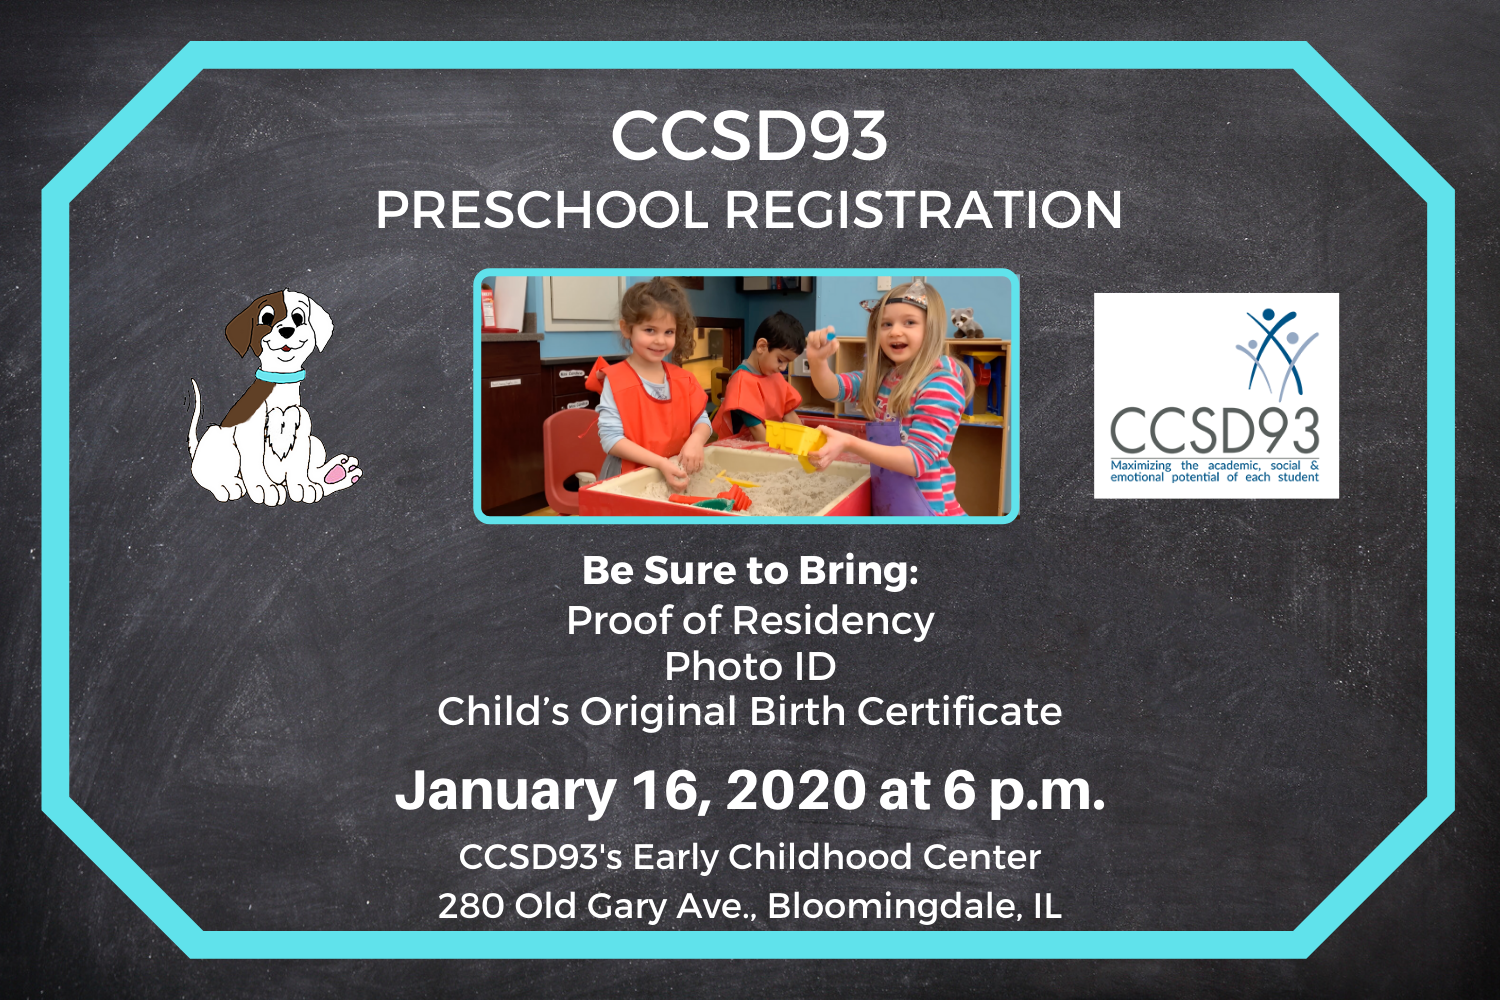 Register for 2020-21 Preschool on January 16 at 6 p.m.